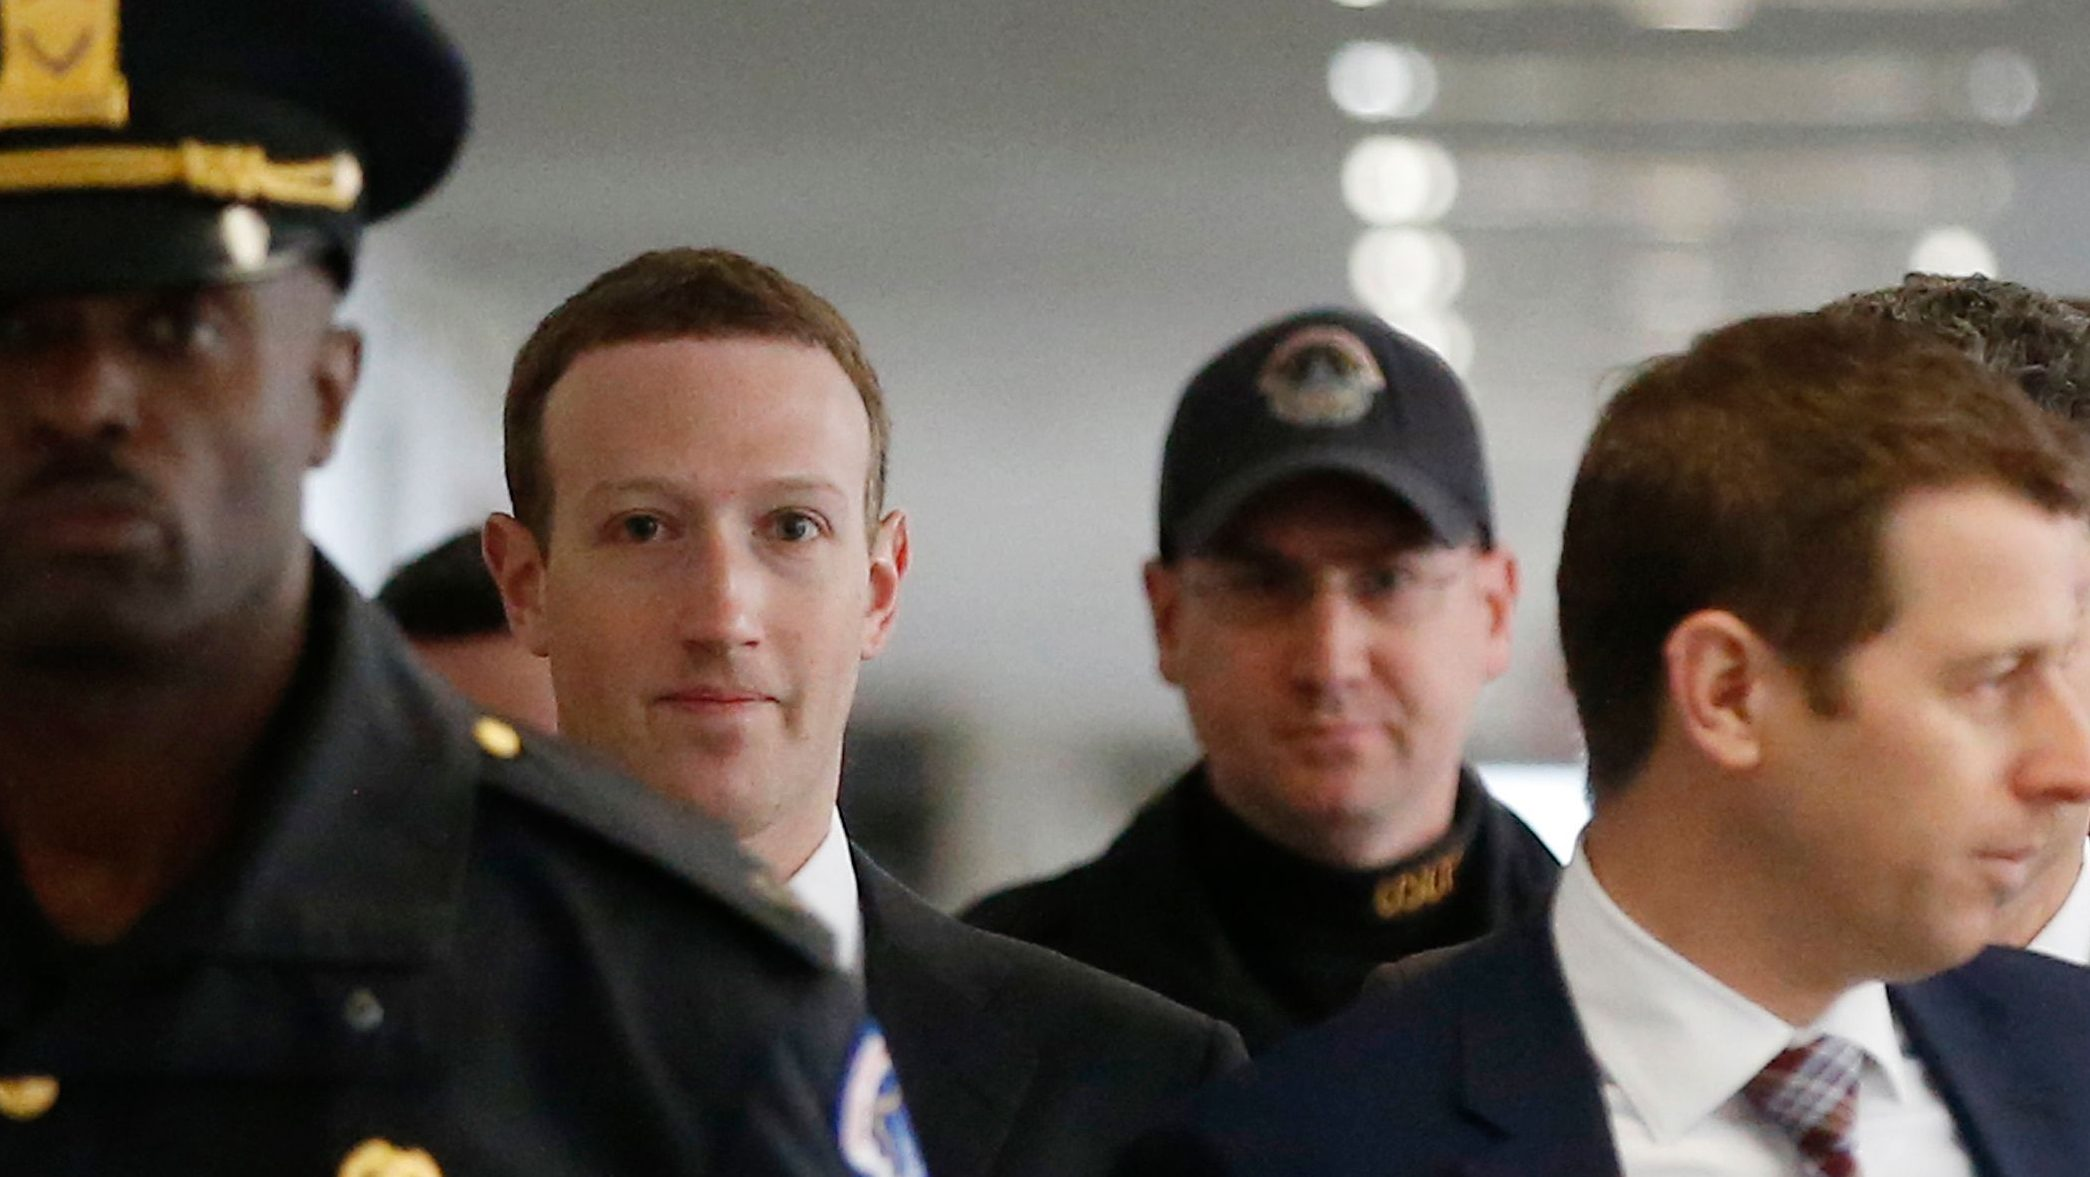 Facebook CEO Mark Zuckerberg arrives for a meeting with Senator Bill Nelson (D-FL) on Capitol Hill in Washington, U.S., April 9, 2018. REUTERS/Leah Millis - HP1EE491BXQ44